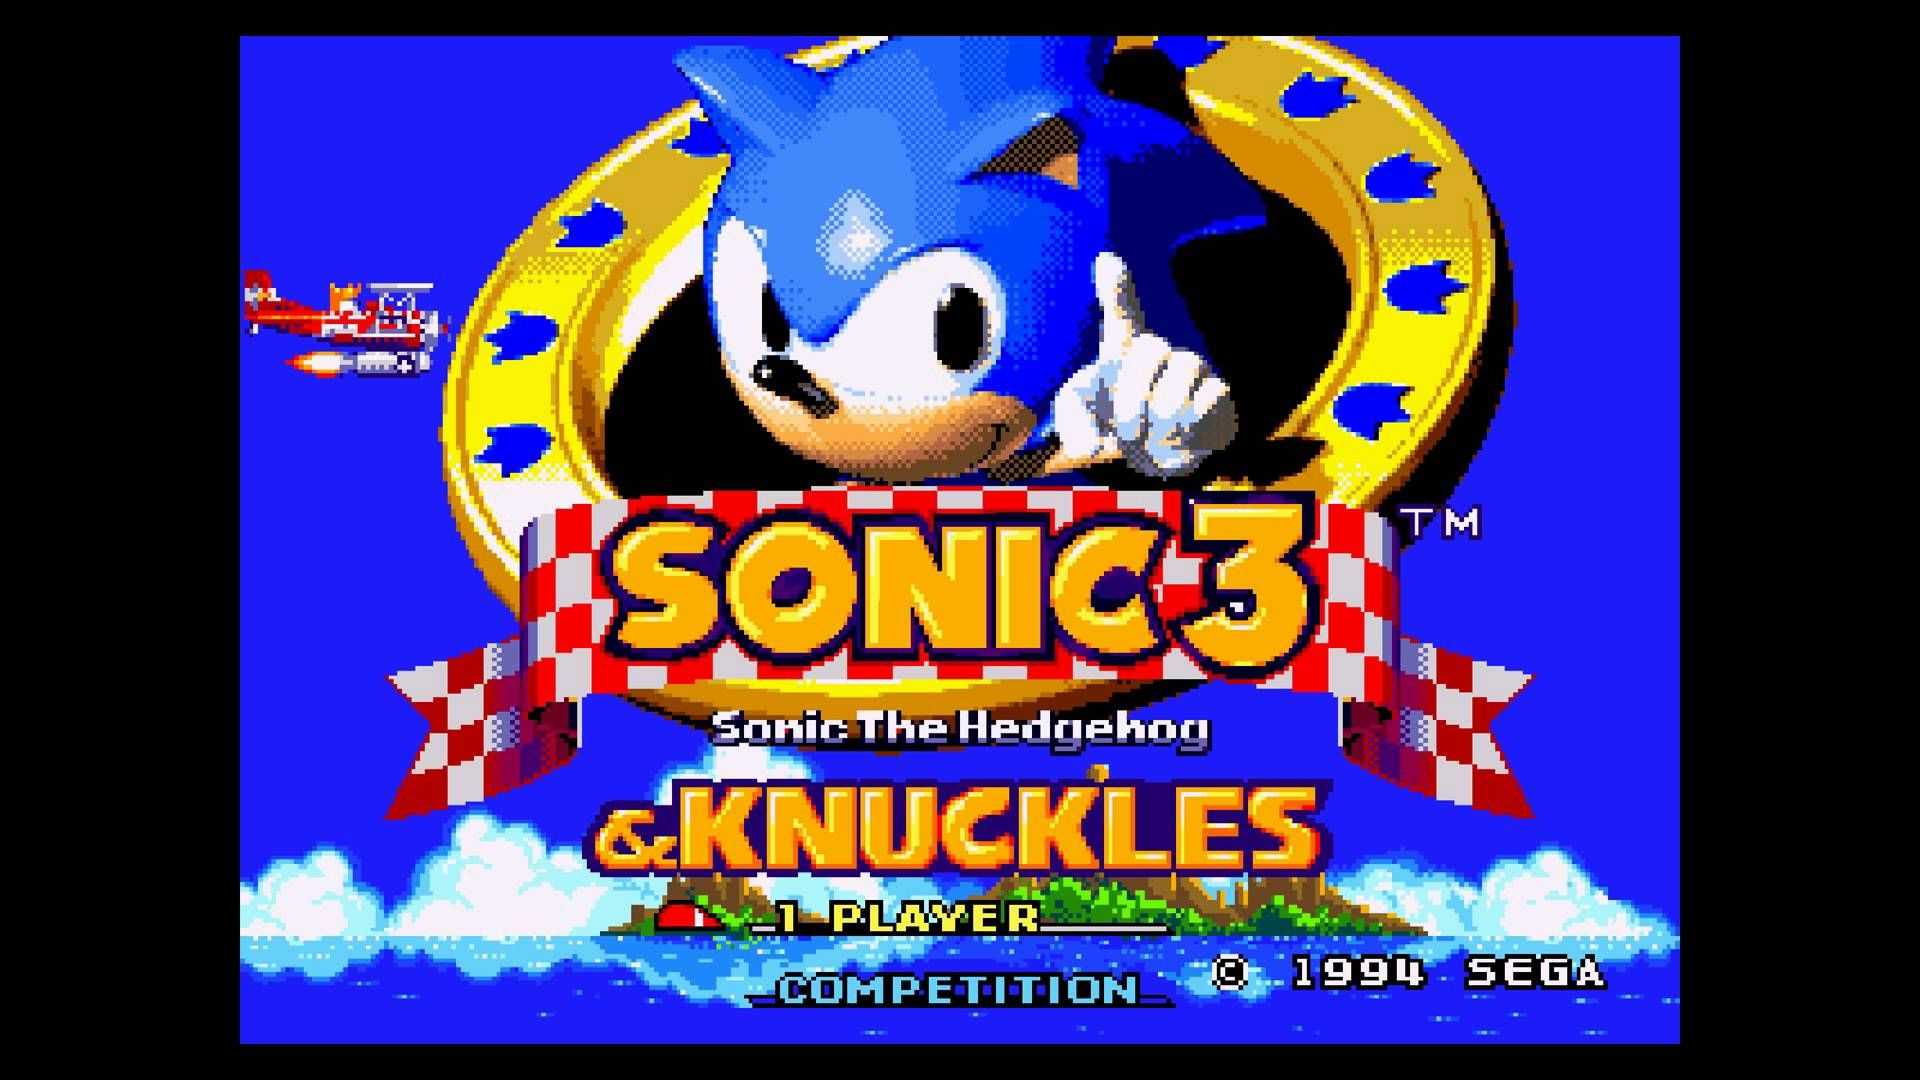 Image Result For Sonic 3 And Knuckles Title Screen Sonic The Hedgehog Sonic Sonic 3